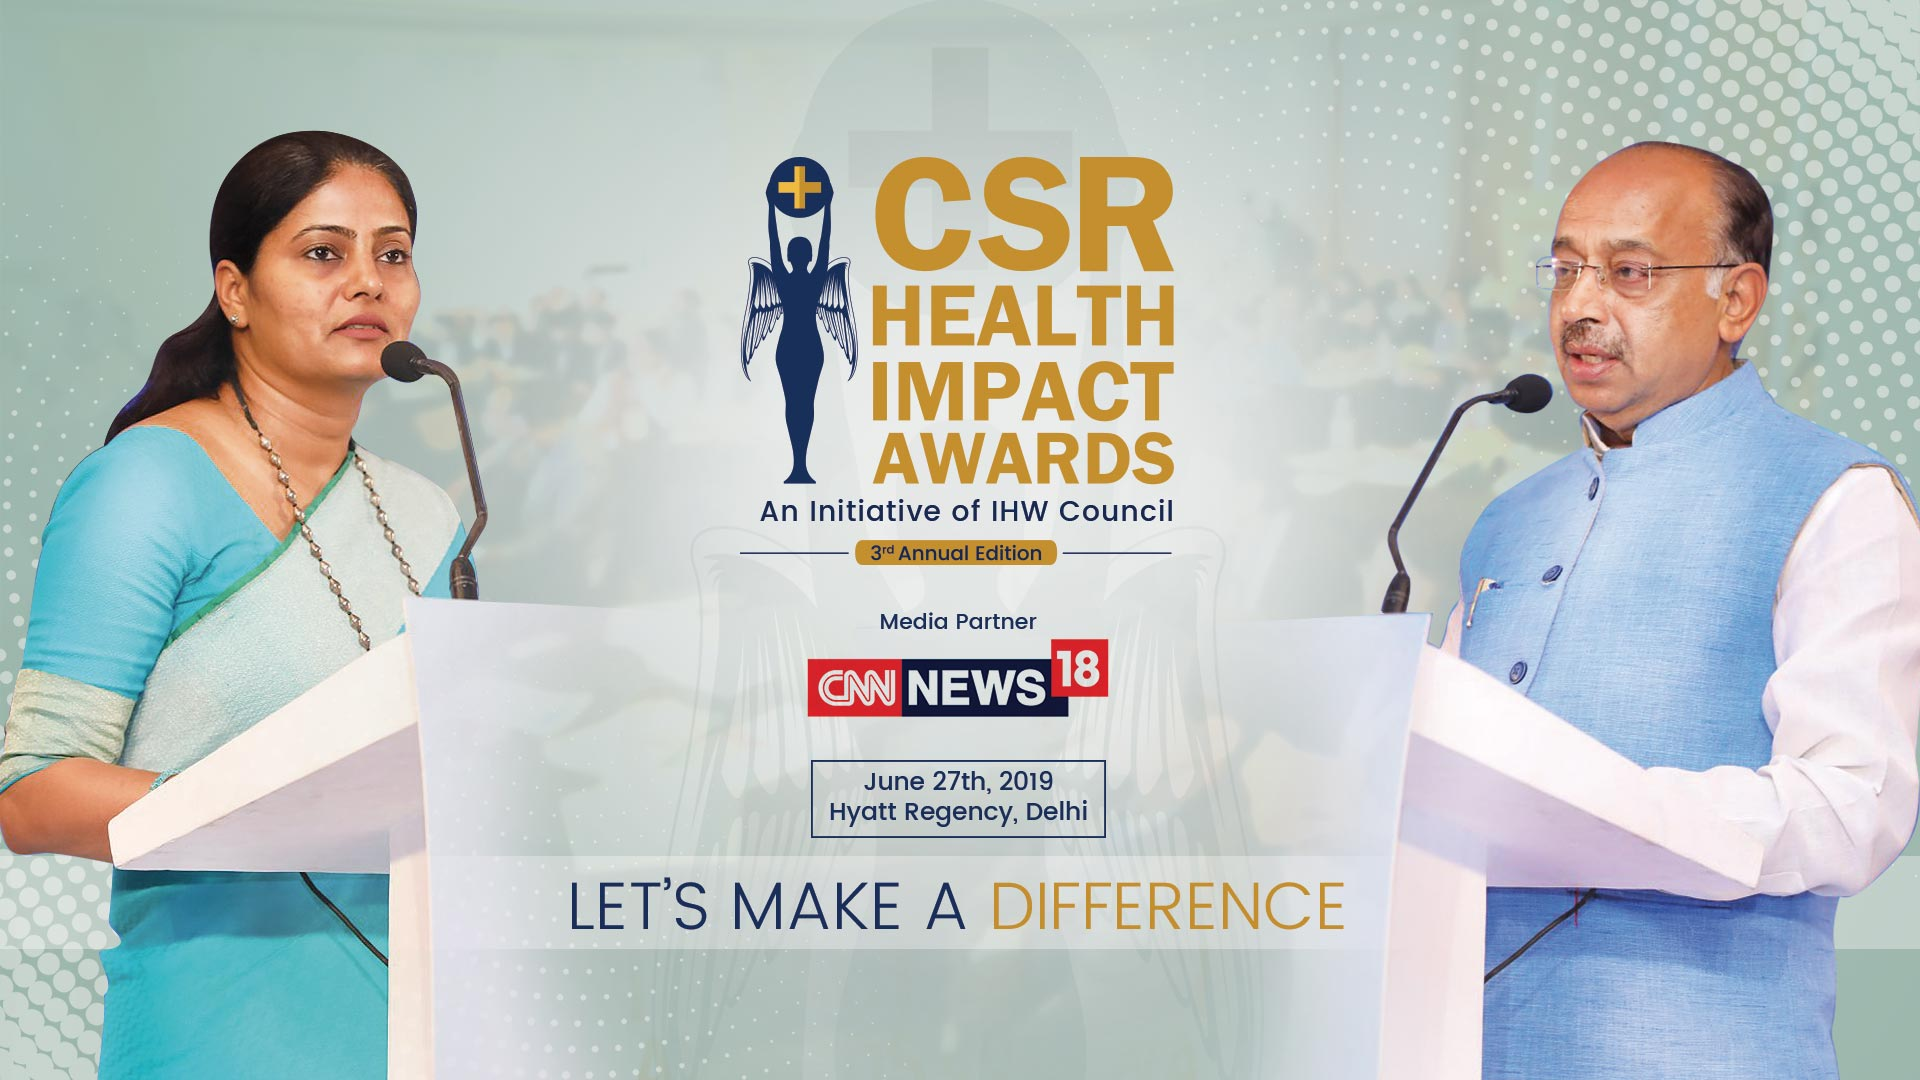 CSR Health Impact Awards 2019